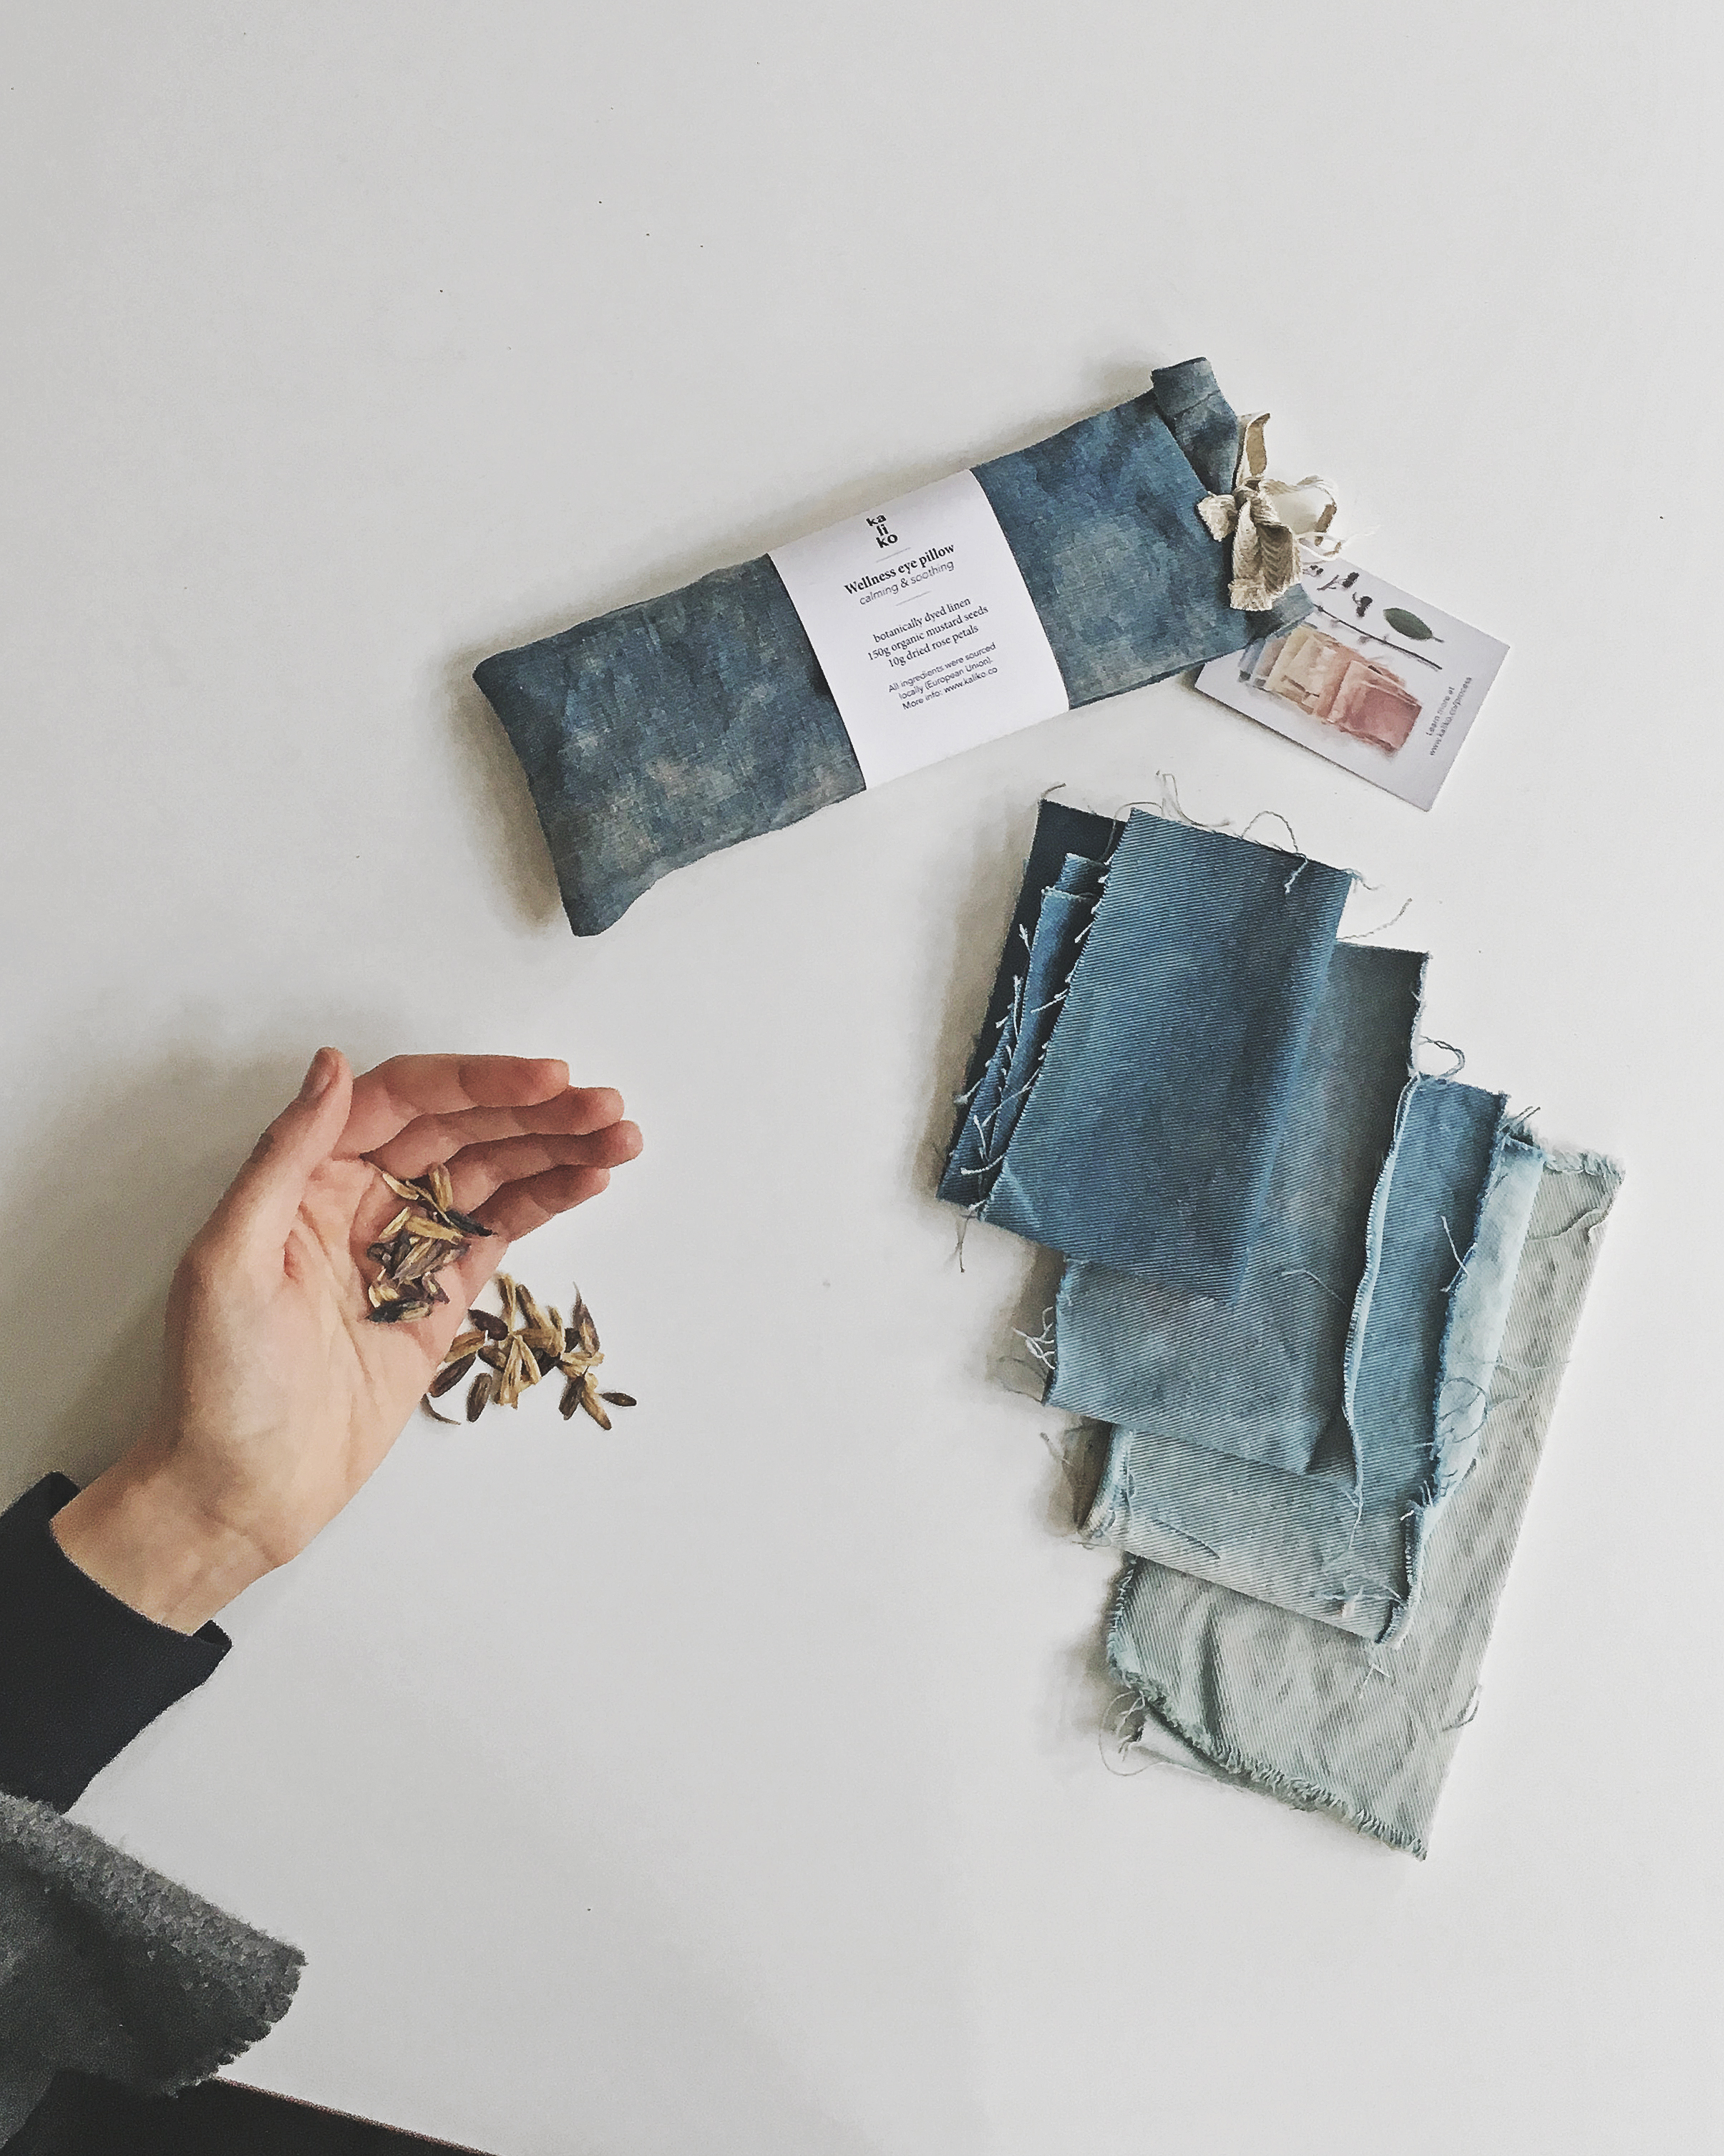 Dye recipes for indigo and woad vats on my blog